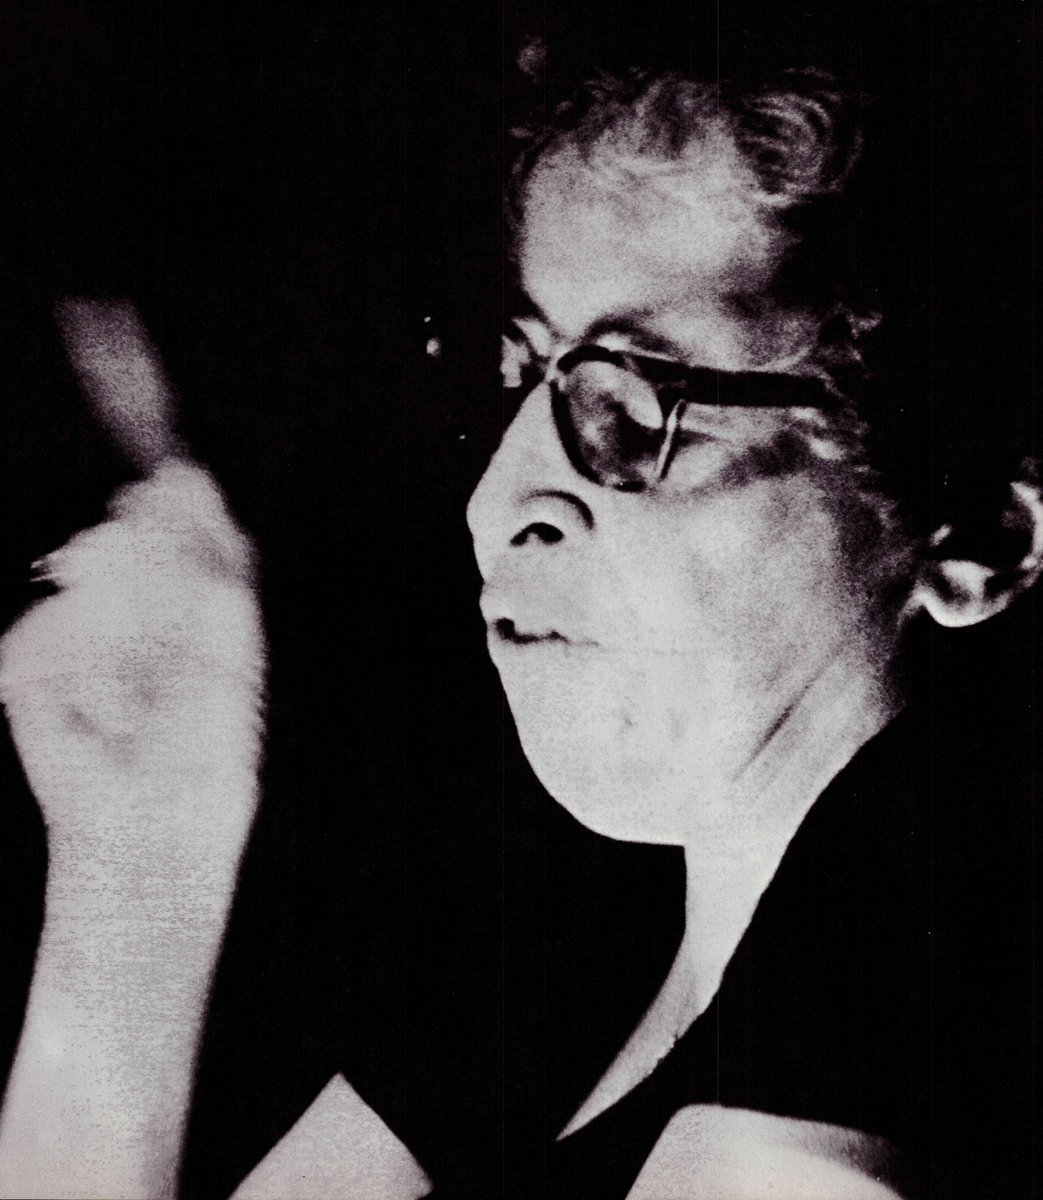 test Twitter Media - Did you know political philosopher Hannah Arendt taught at the Center for Advanced Studies at @wesleyan_u from 1961 to '63? Here she is featured in the '66 Olla Podrida as a guest lecturer when she was faculty at The University of Chicago. #WesArchives #OllaPodridas https://t.co/7RZU5ktjtU